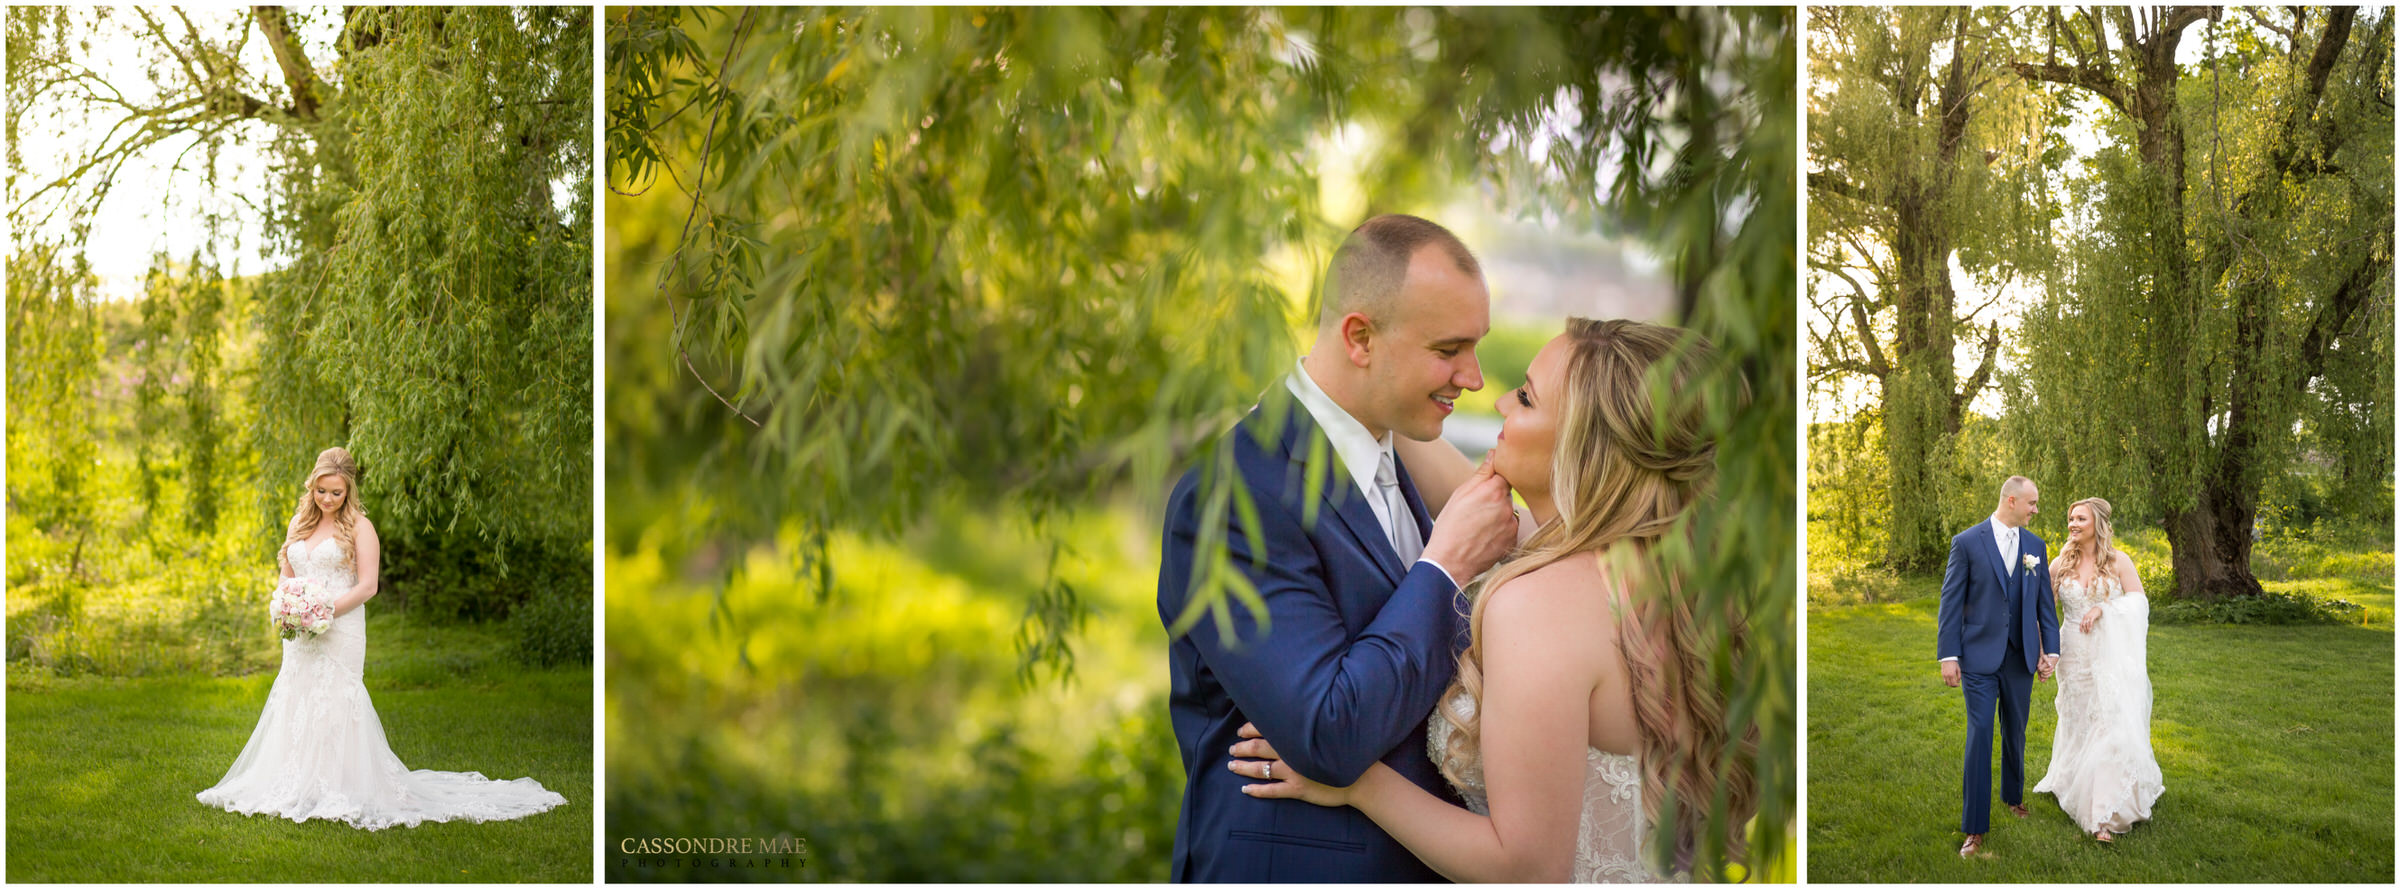 Cassondre Mae Photography West Hills Country Club Wedding Middletown NY Hudson Valley Photographer